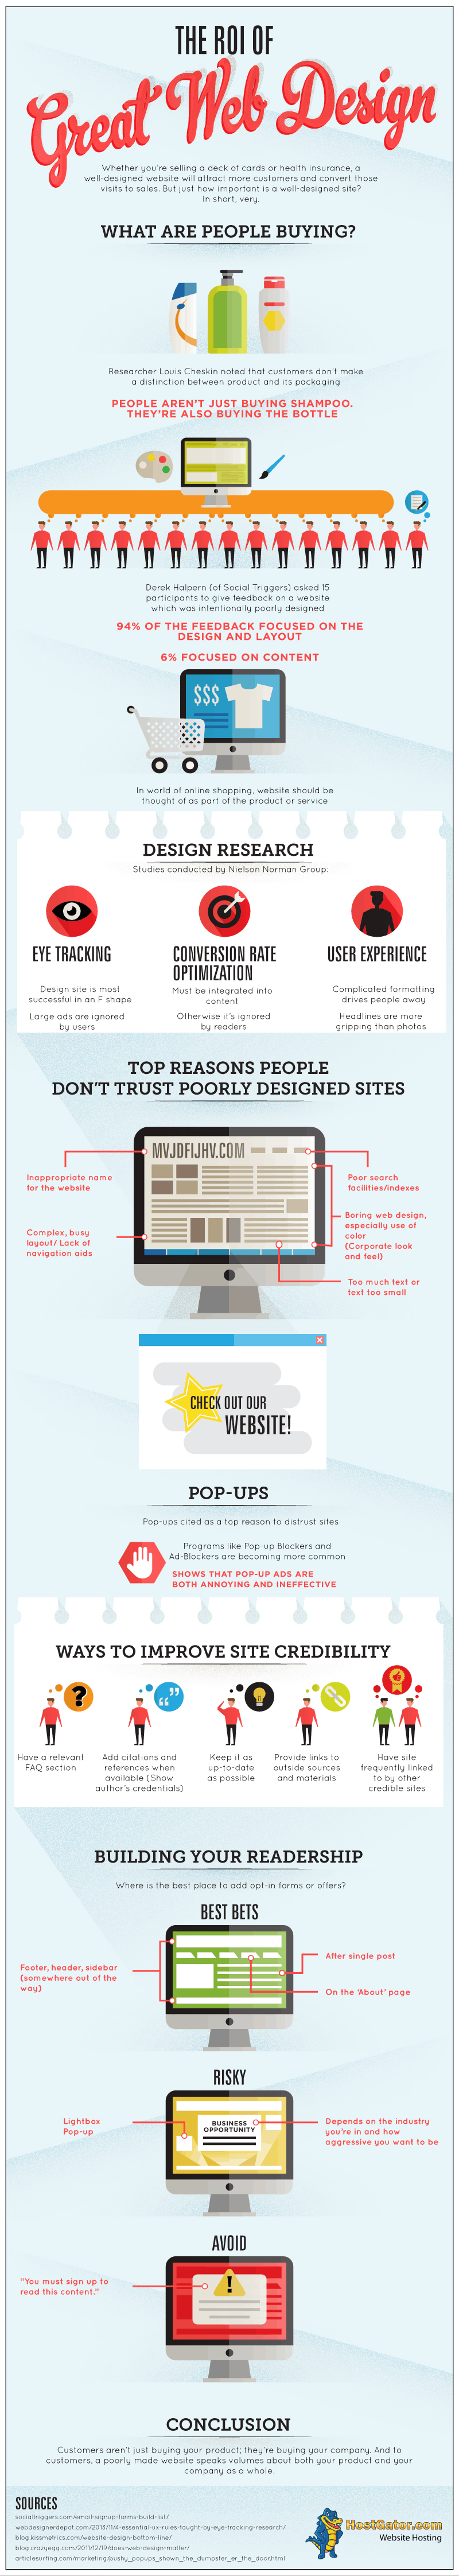 The ROI of Web Design infographic